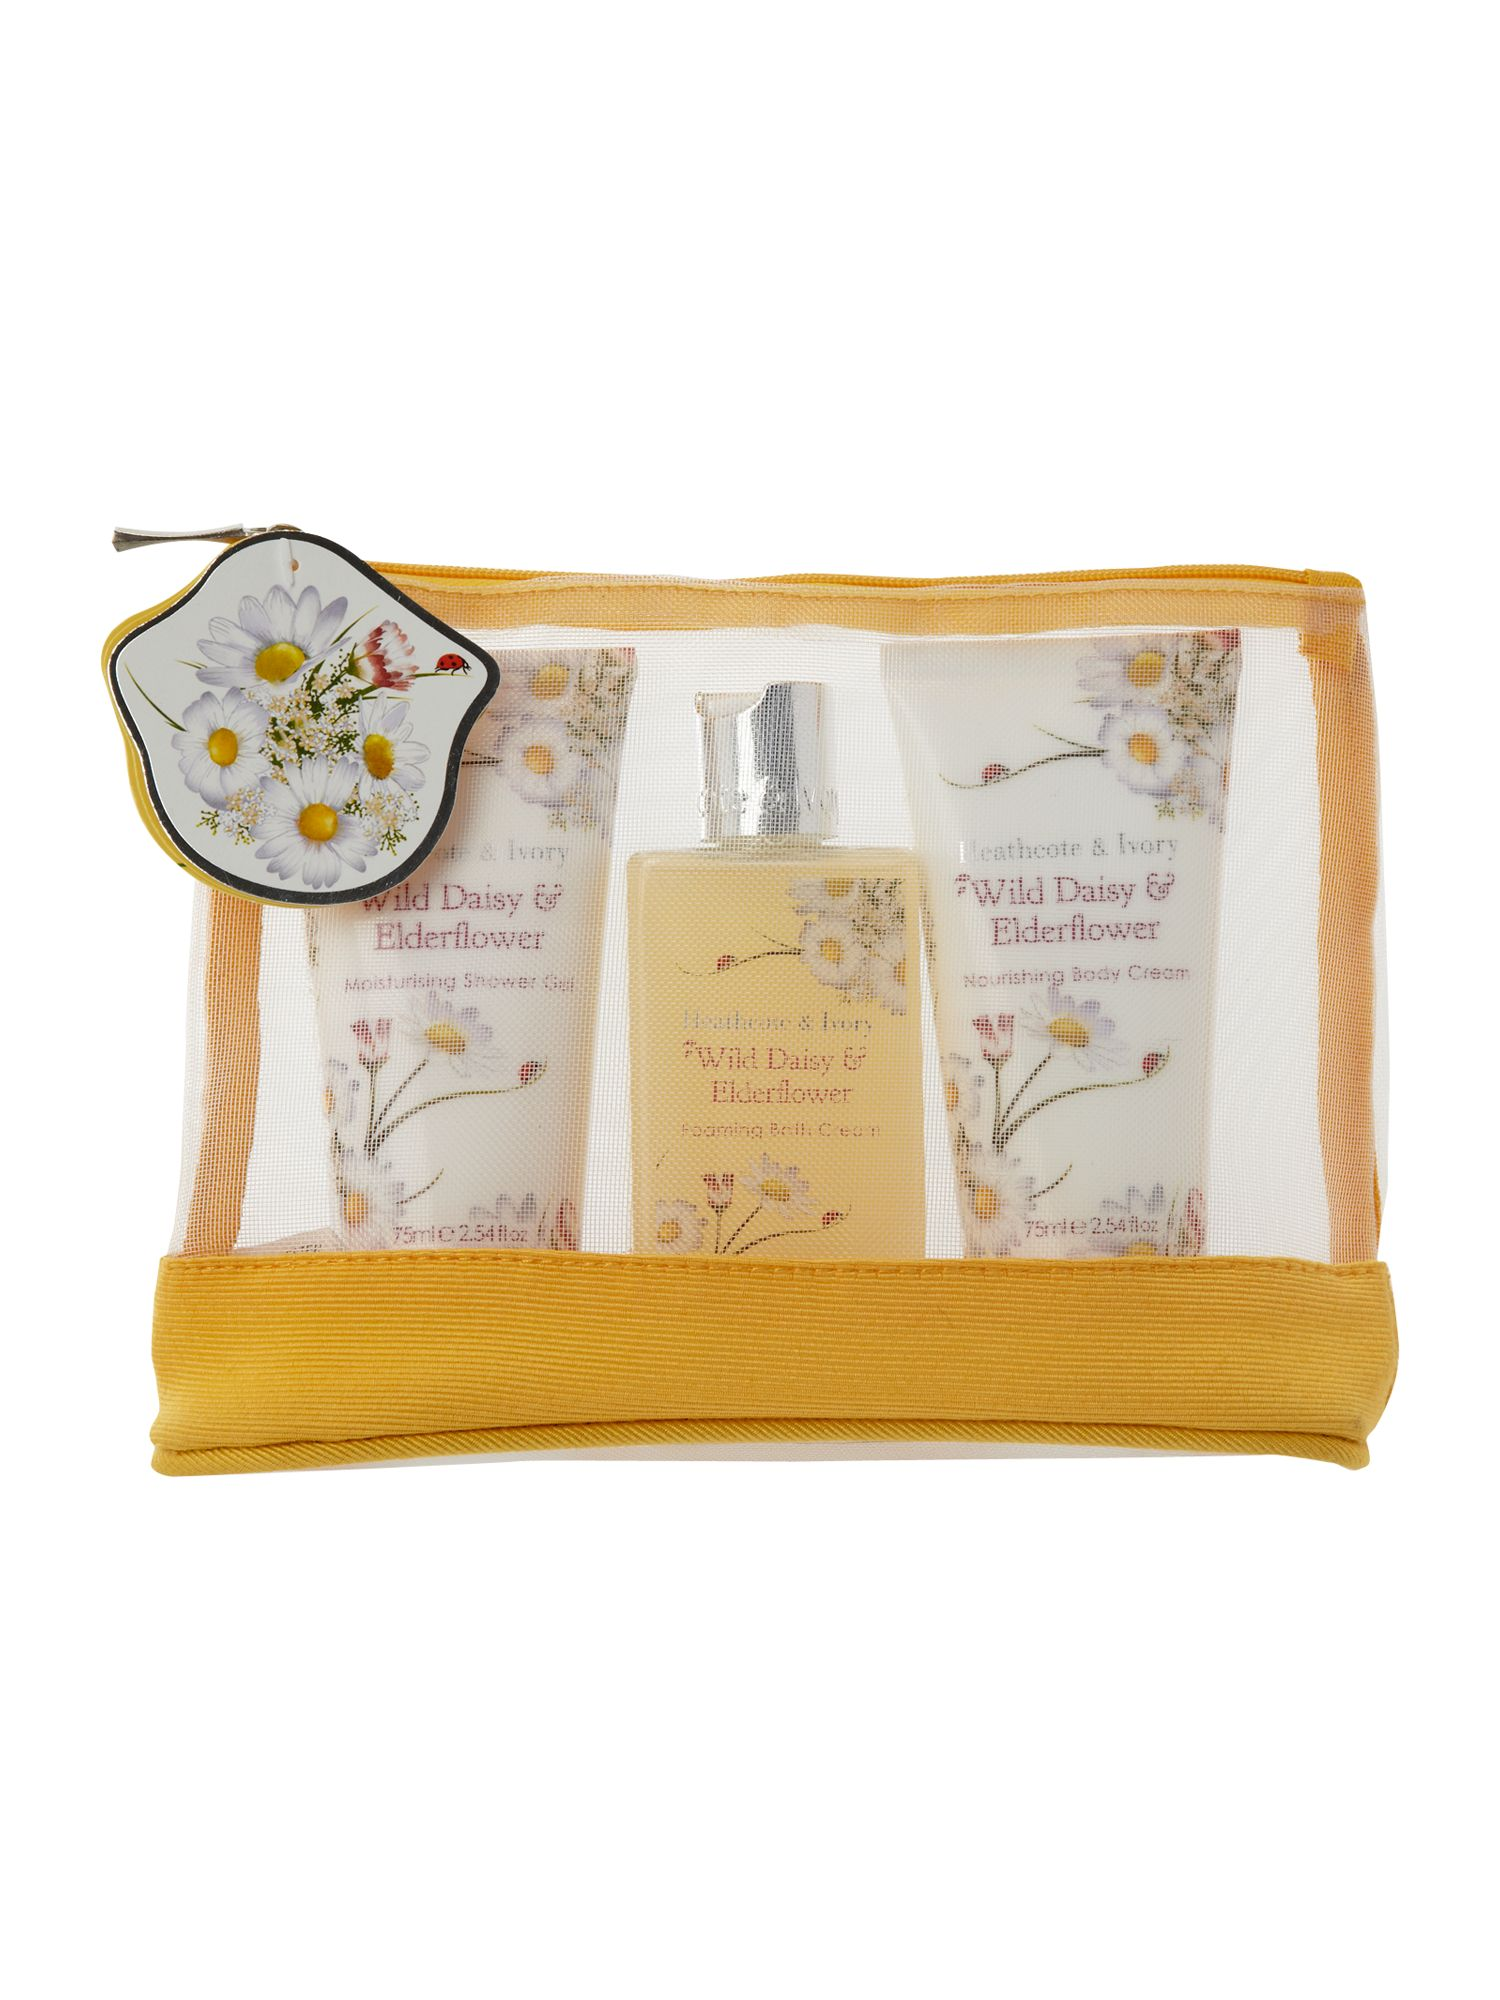 Wild Daisy & Elderflower Travel Essentials